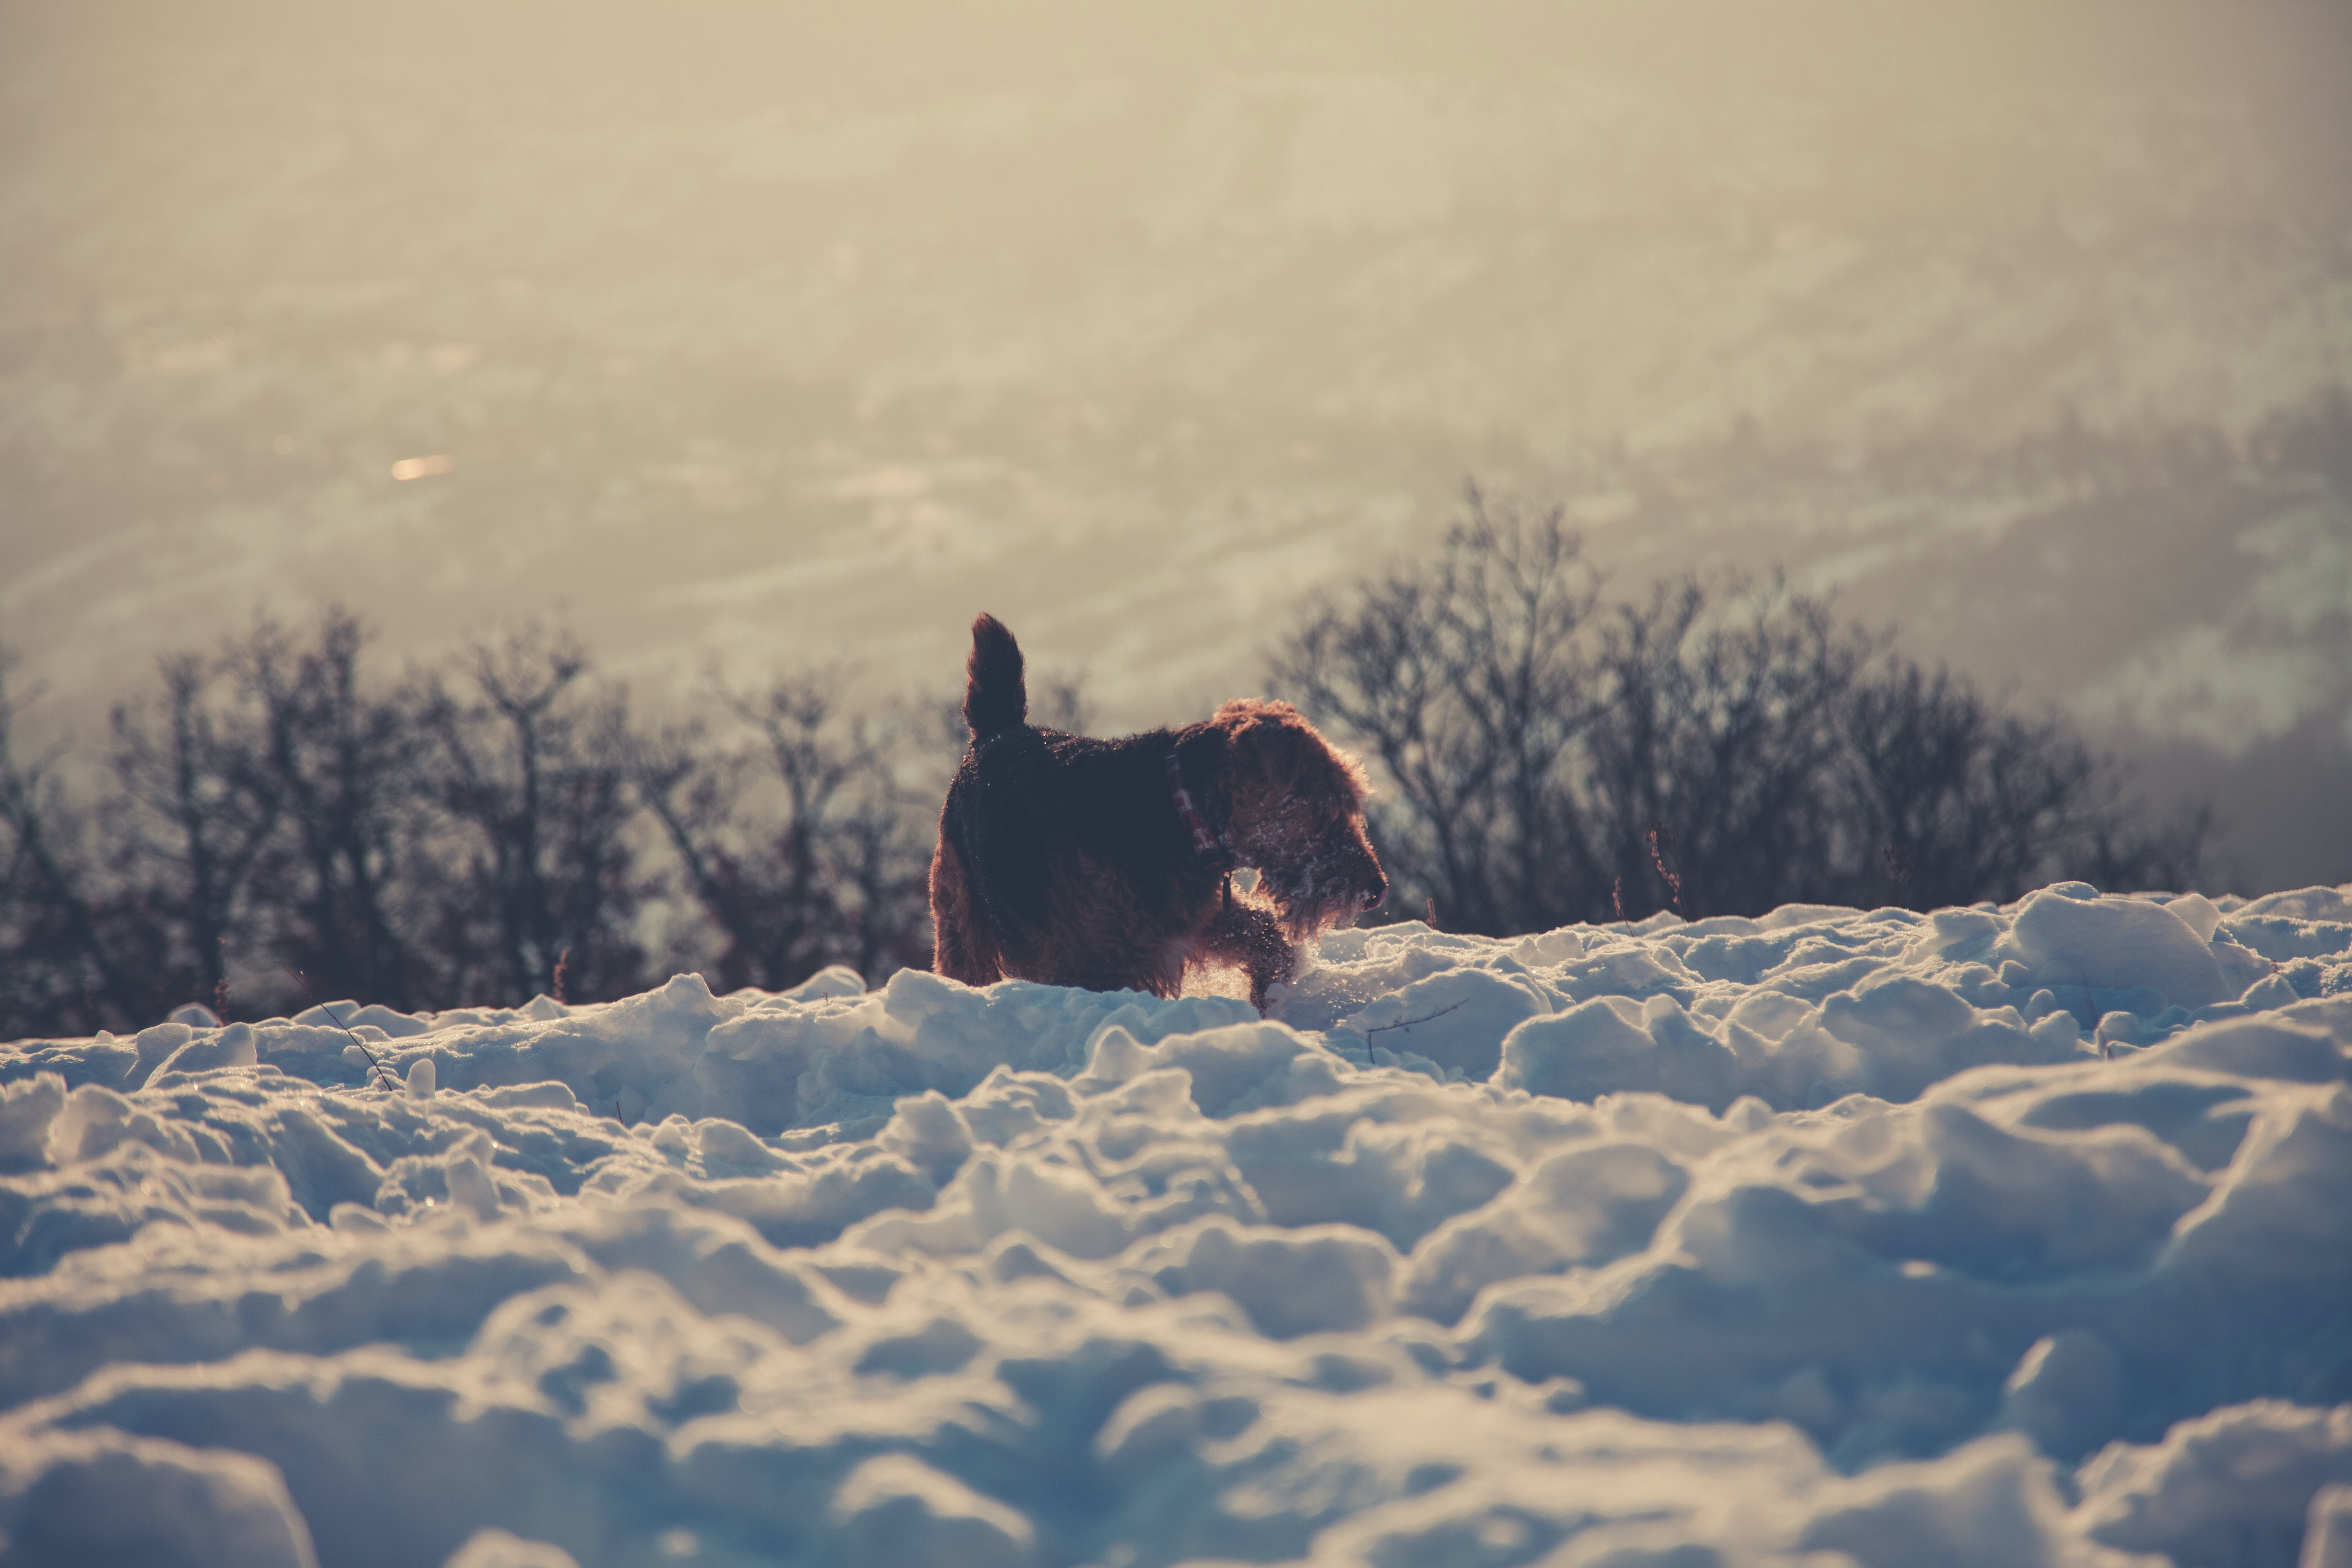 Photography of Long-coated Brown Dog Standing on Snow Covered Floor